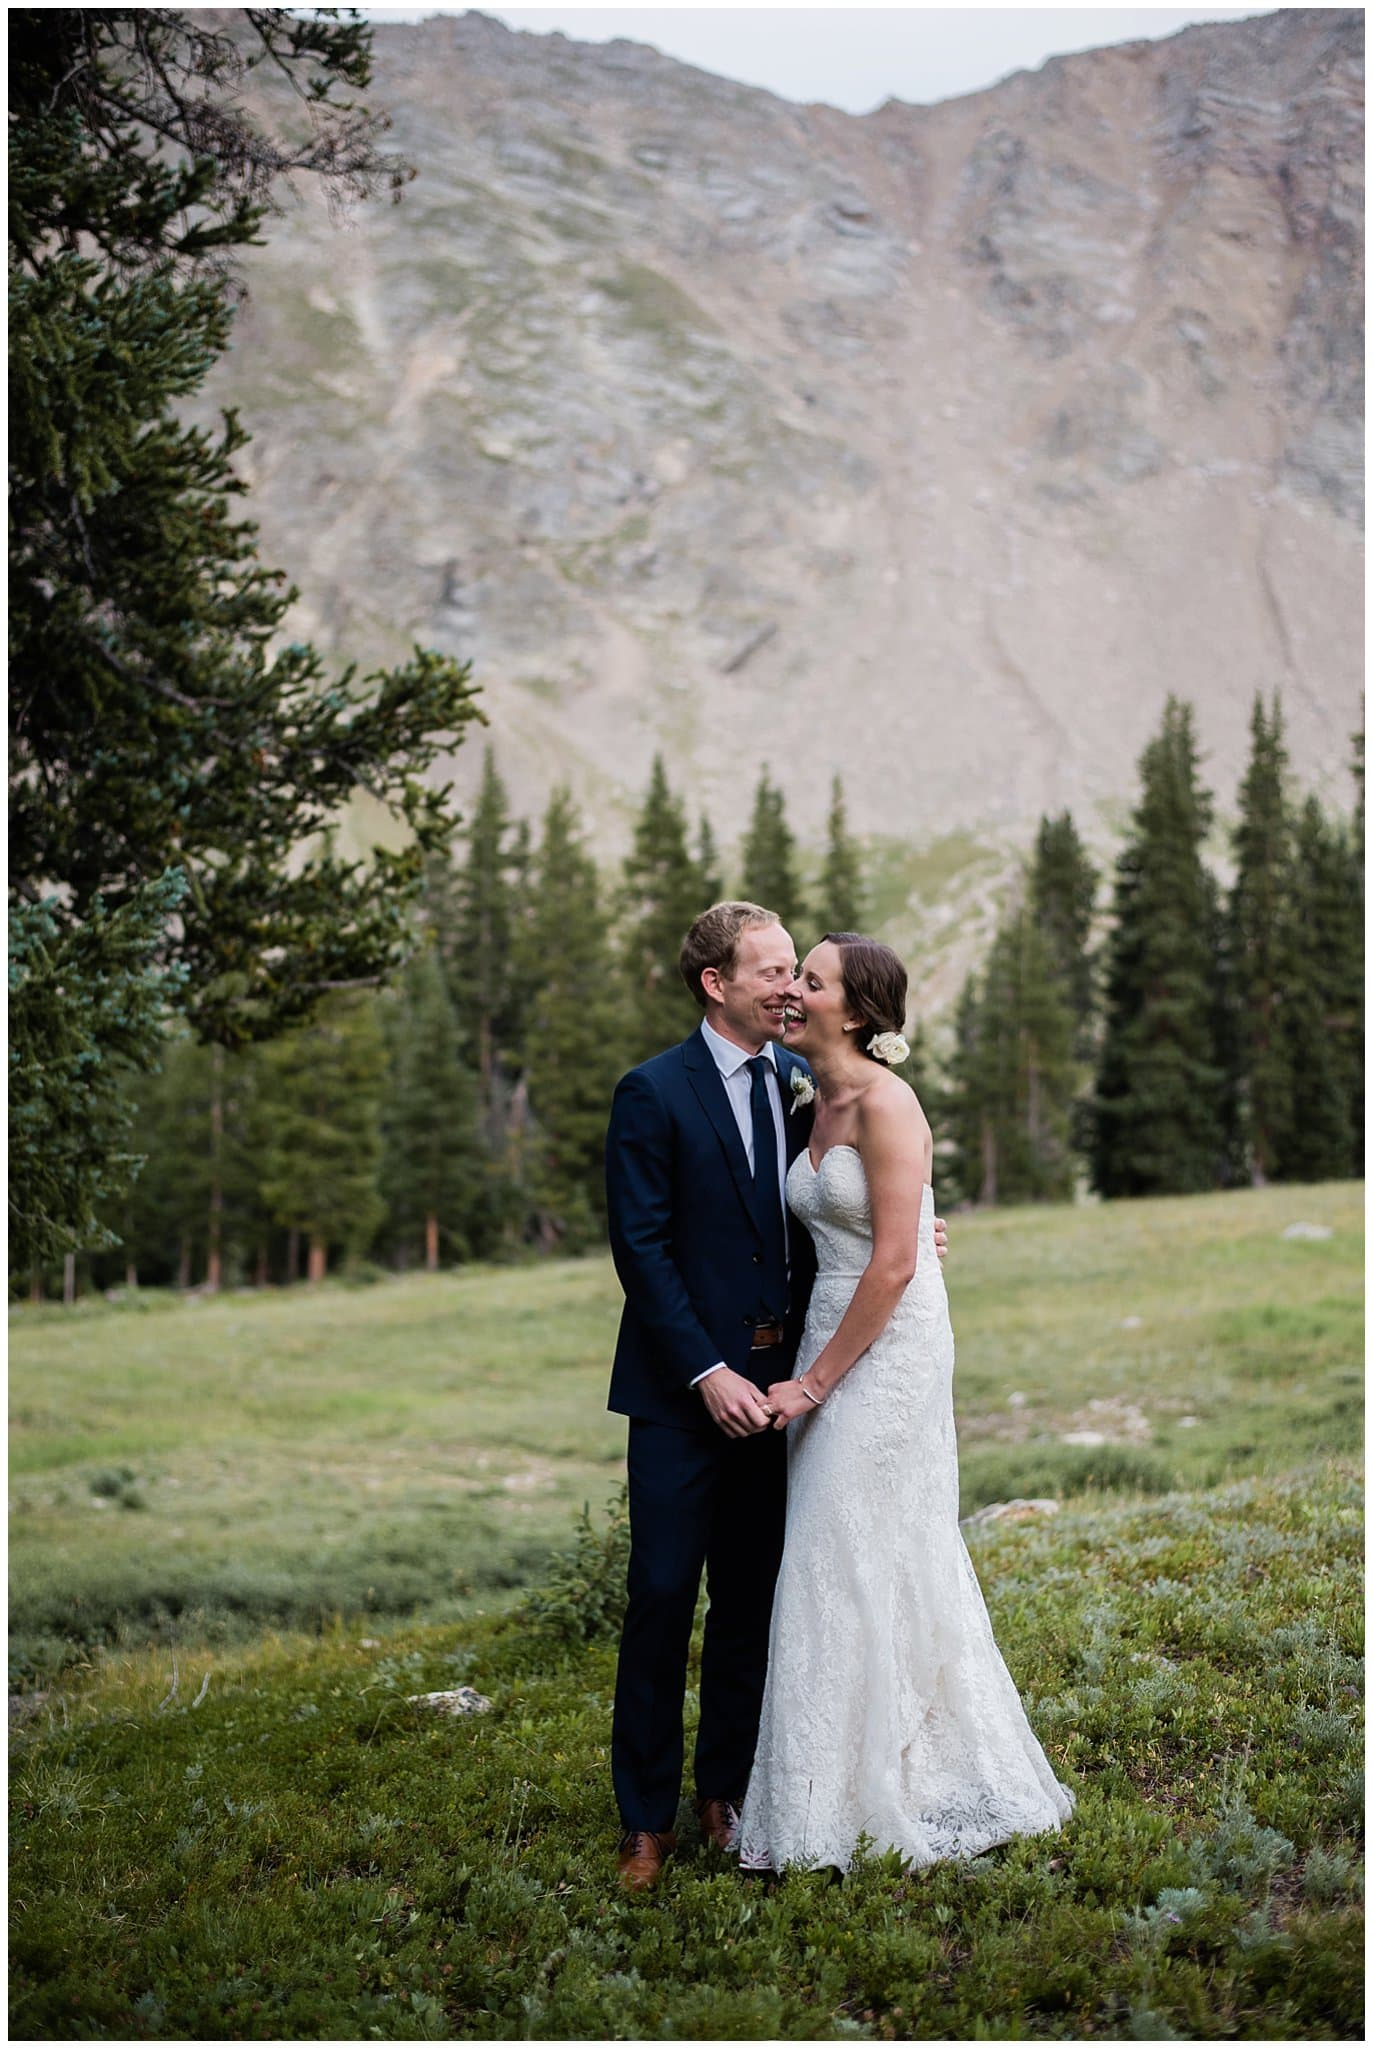 Bride and groom laughing at Arapahoe Basin Black Mountain Lodge Wedding by Arapahoe Basin Wedding Photographer Jennie Crate